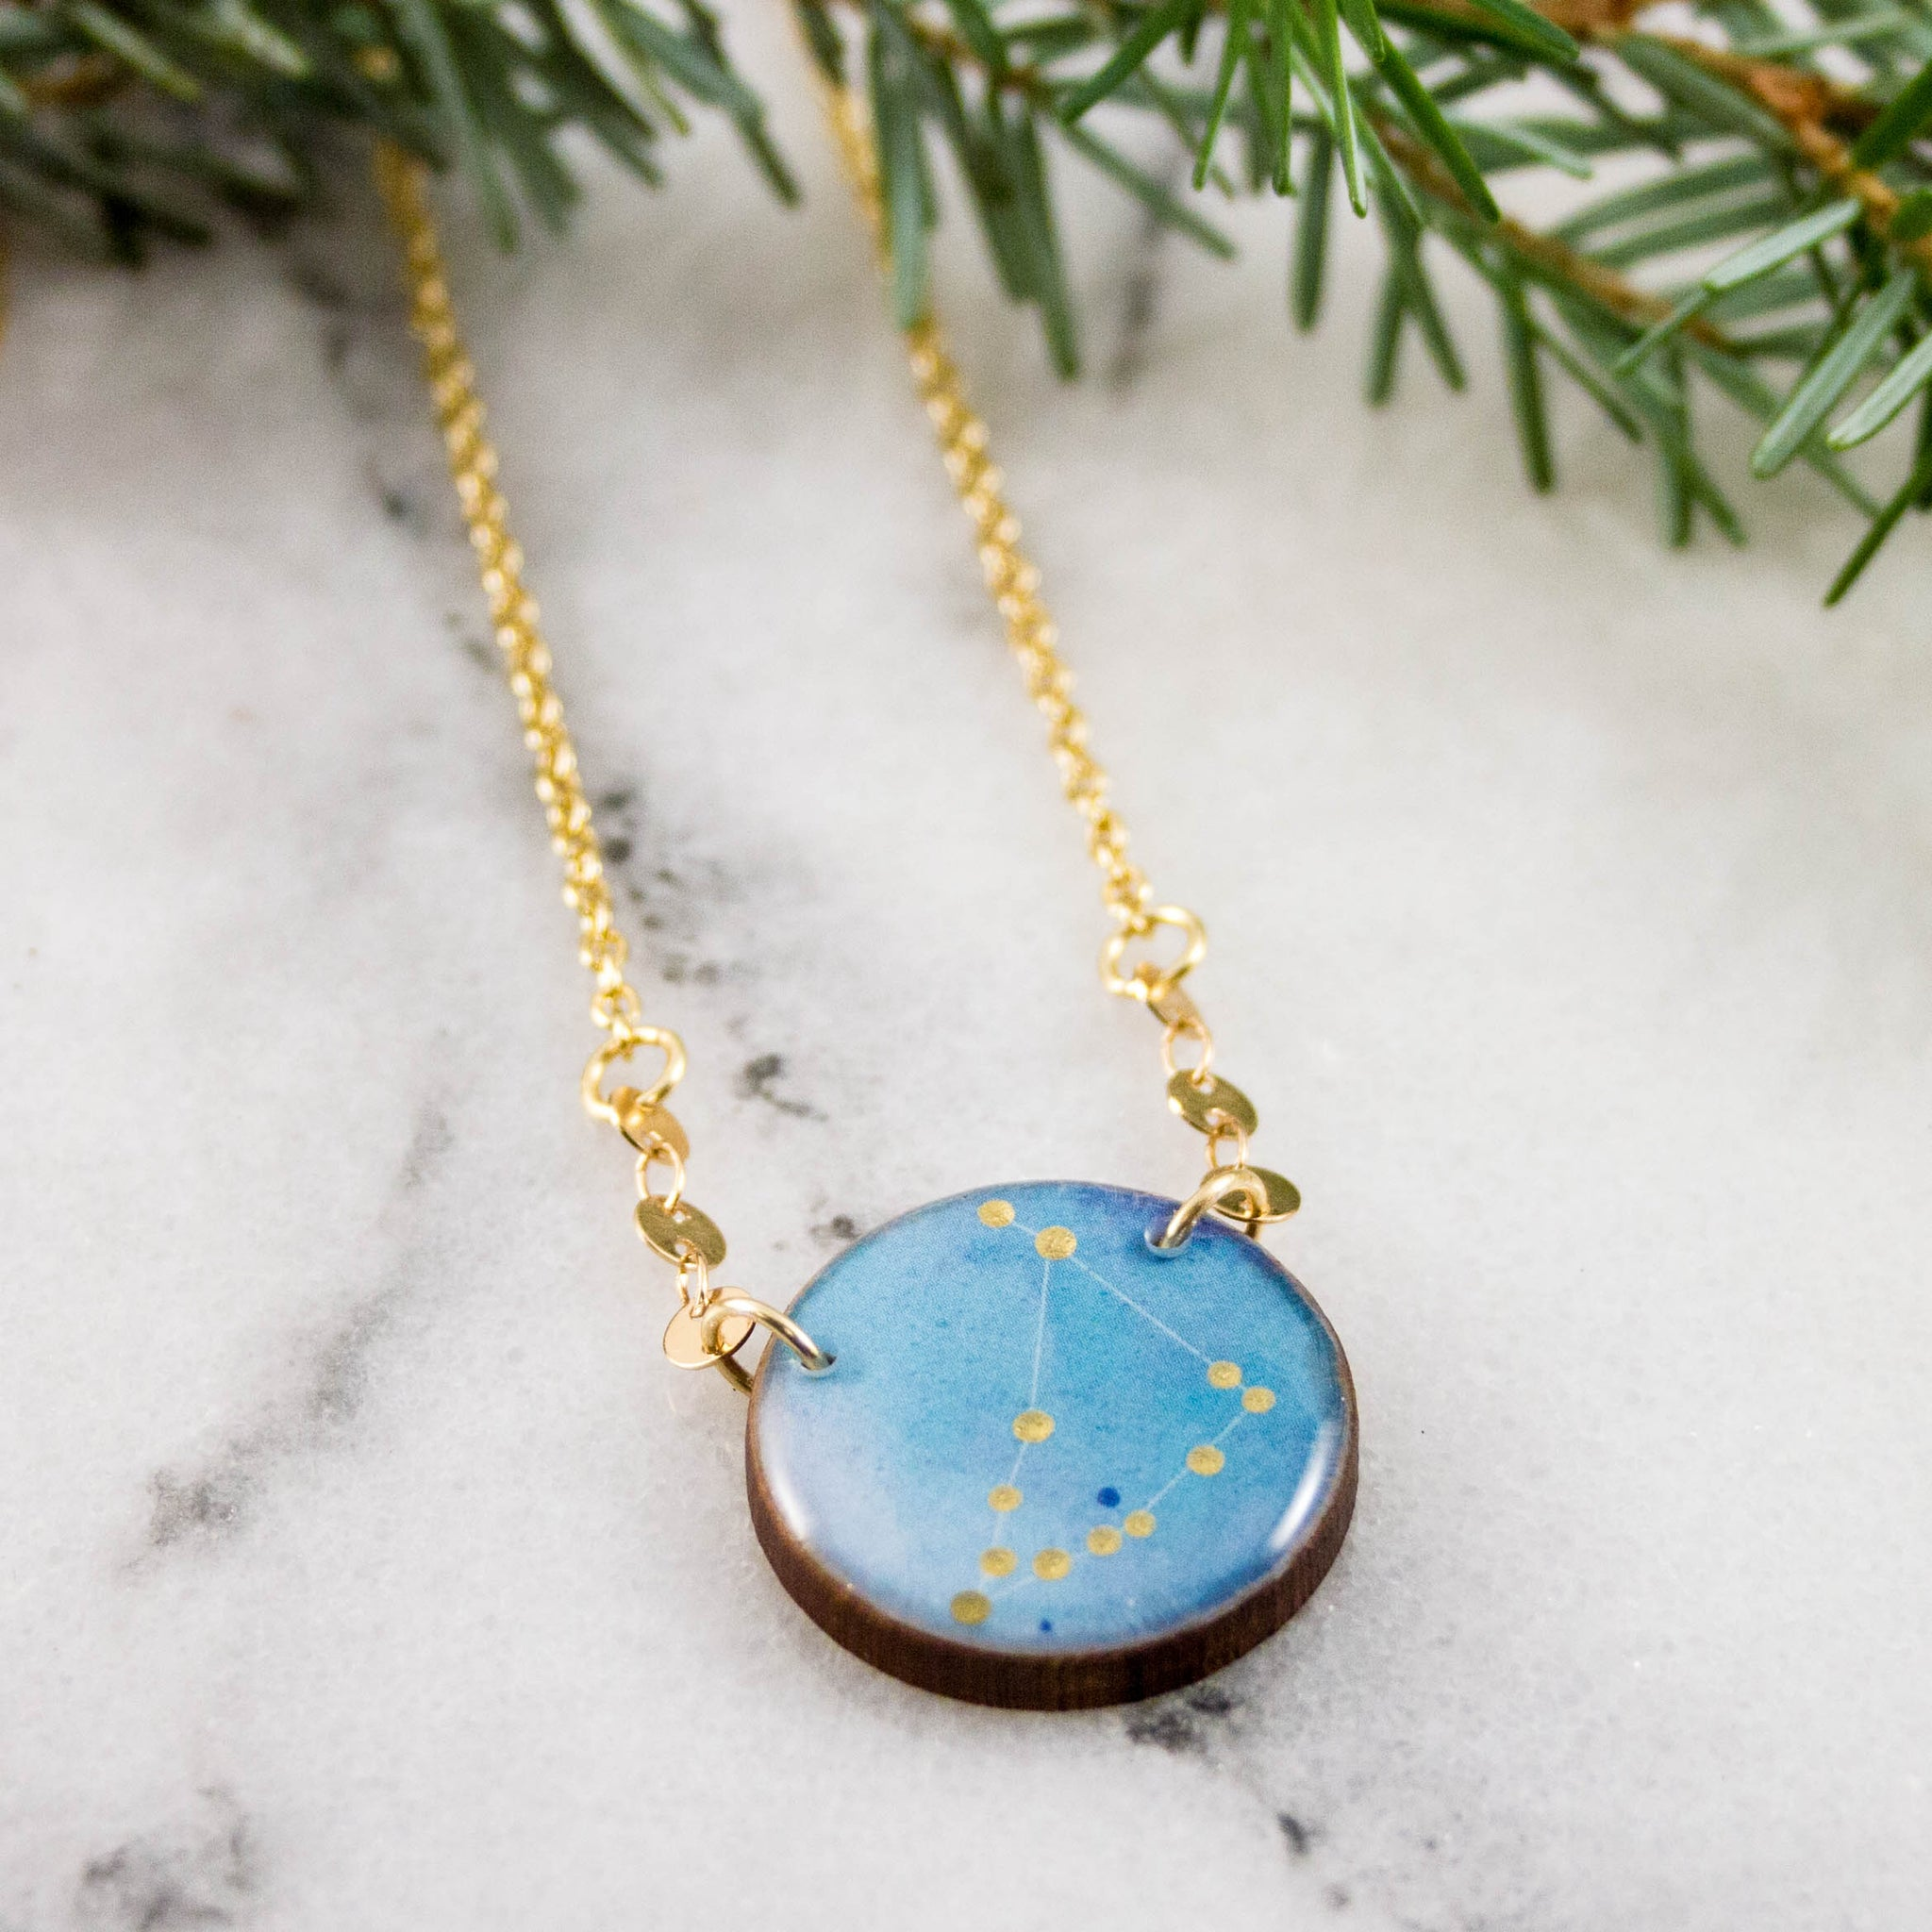 Capricorn Handpainted Constellation Necklace